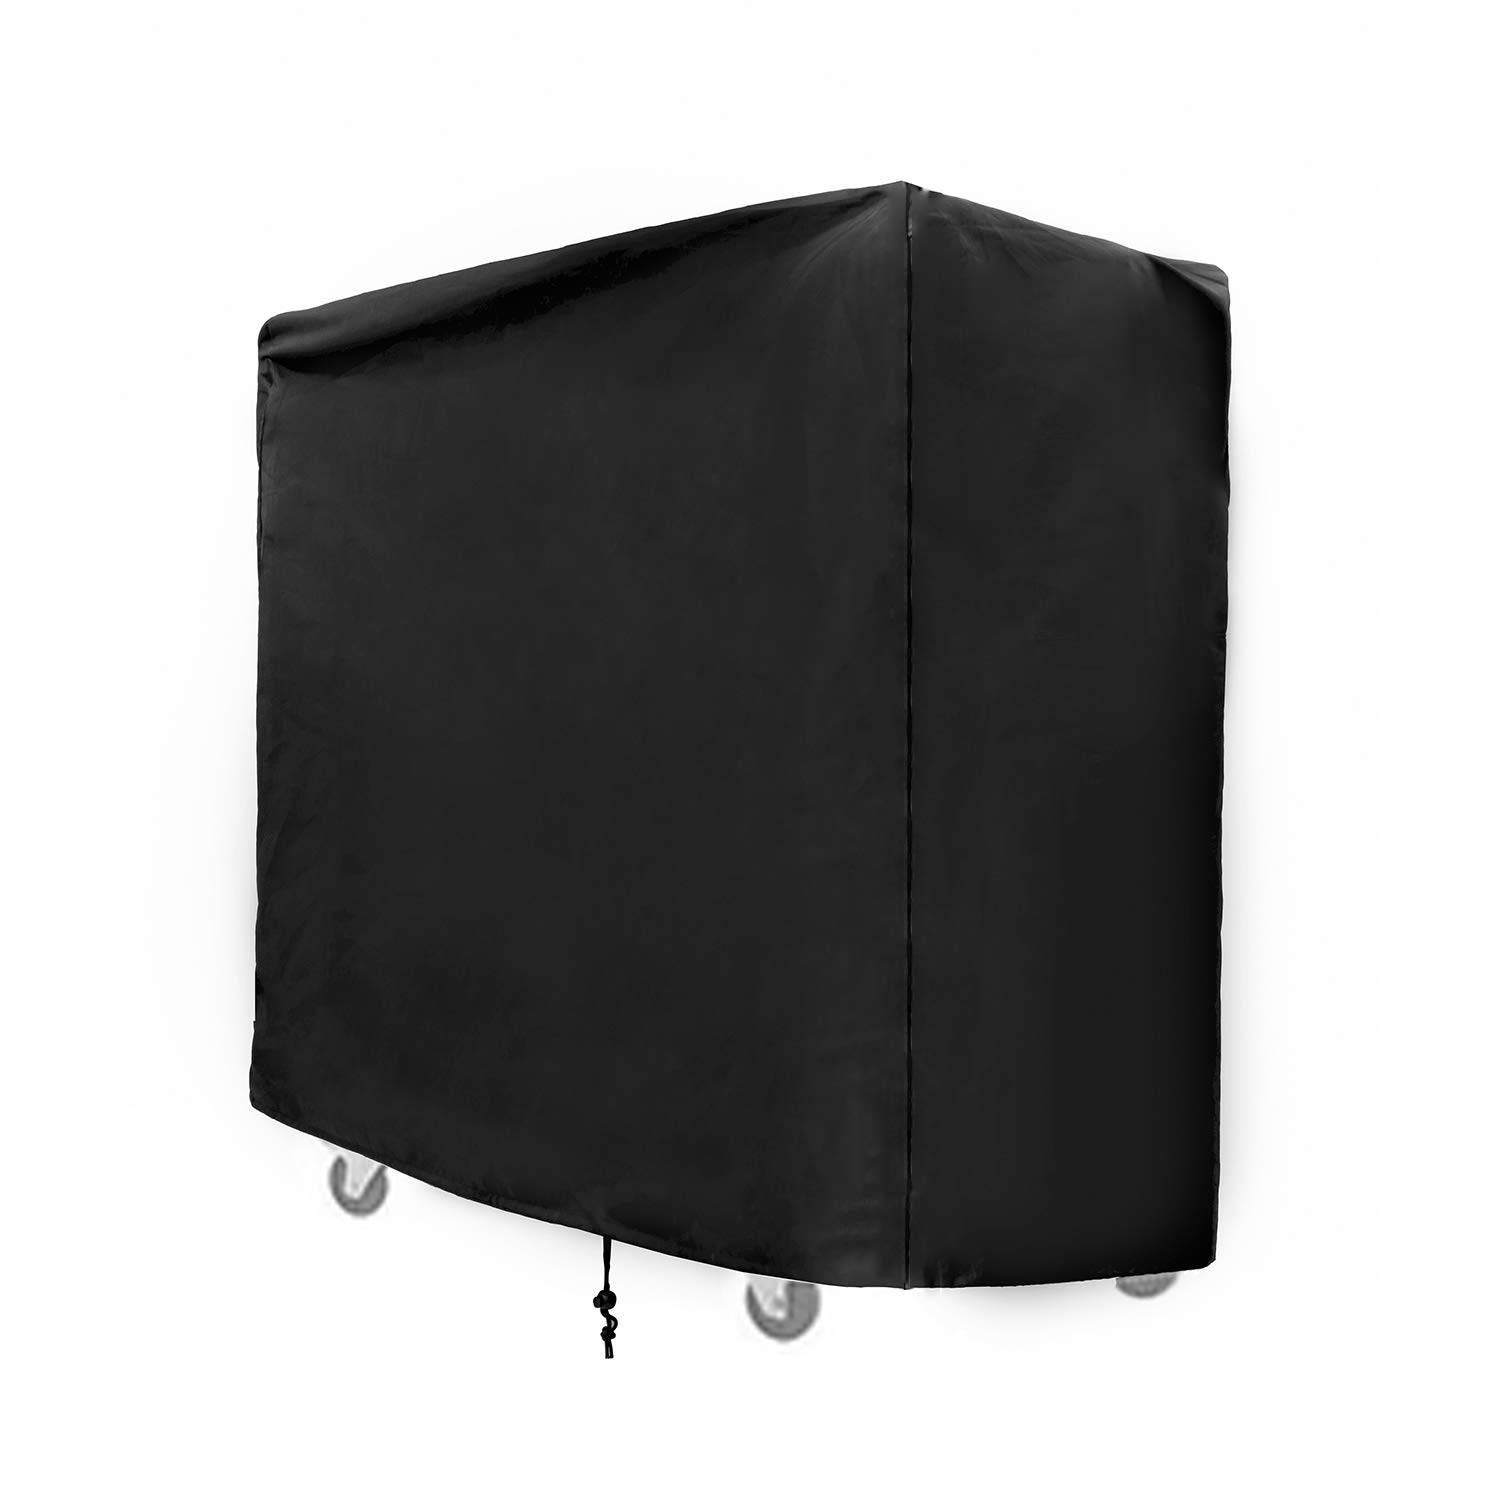 SIRUITON Cooler Cart Cover Fit for Most 80 QT Rolling Patio Cooler Cover Waterproof by SIRUITON